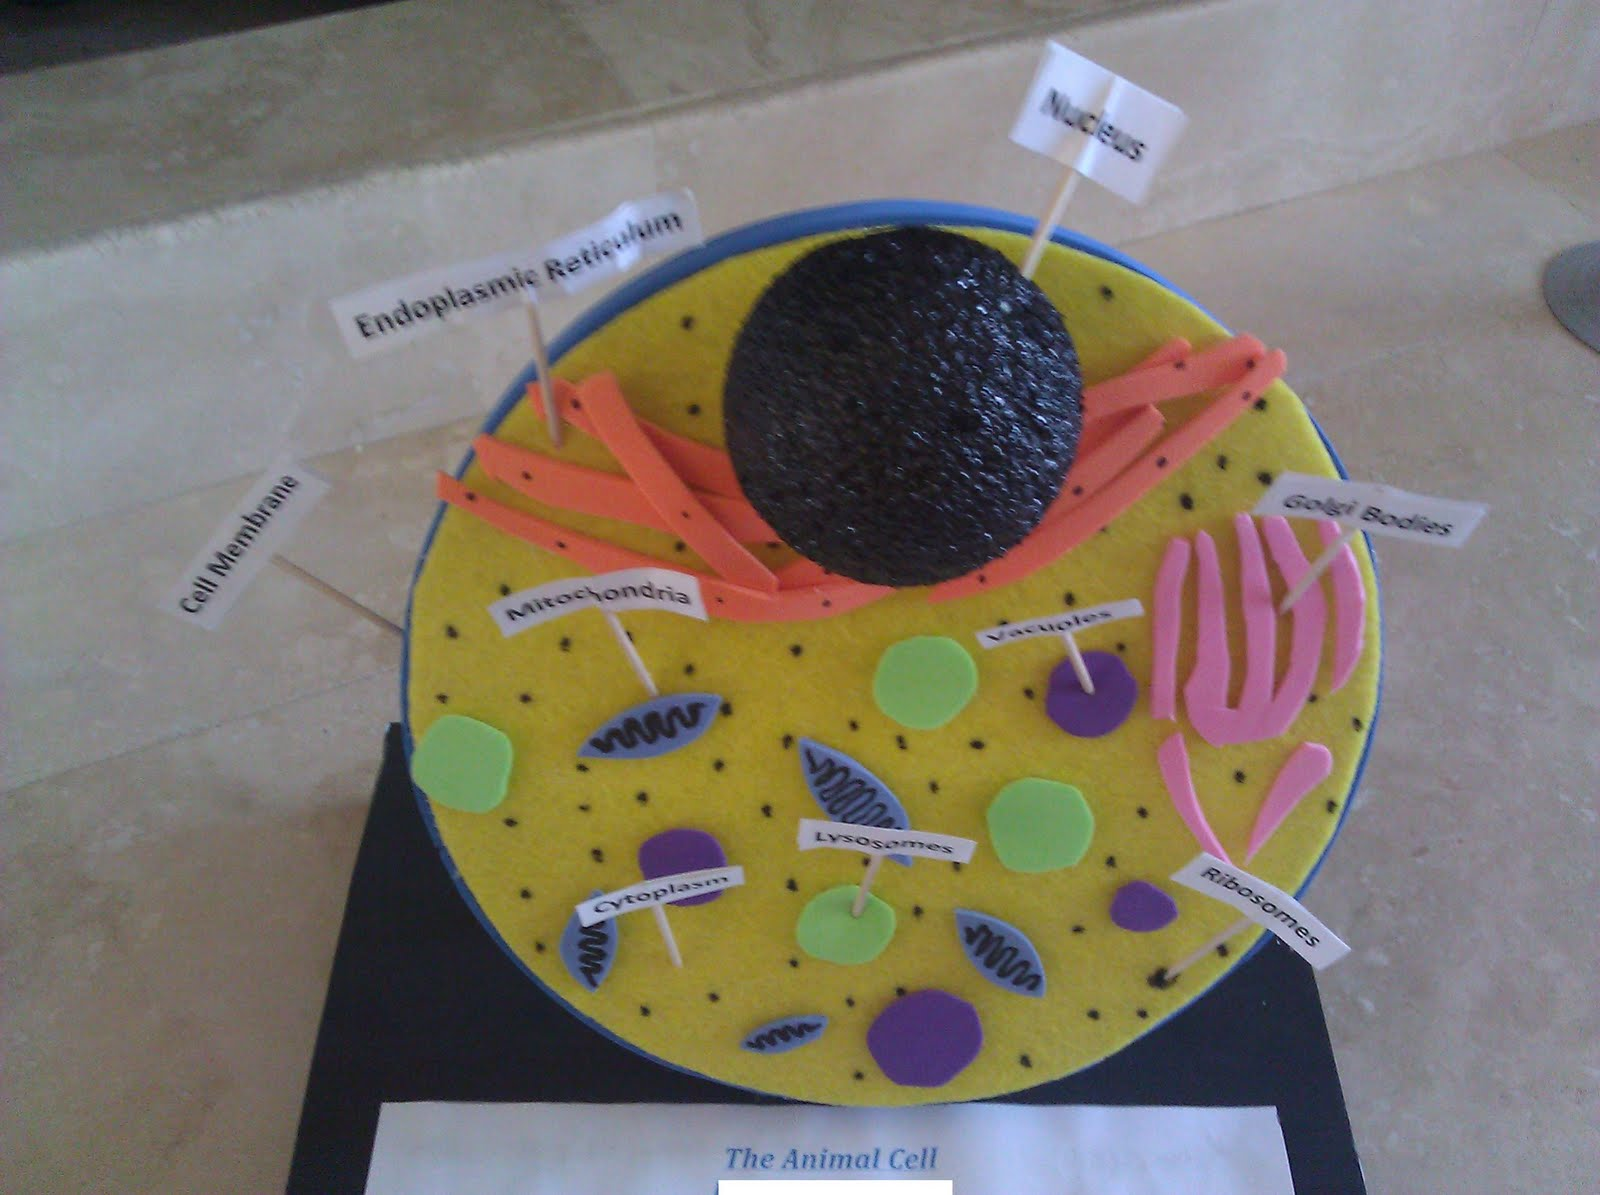 7Th Grade Science Cell Project http://ivebecomemymother.blogspot.com/2010/11/cell-project.html